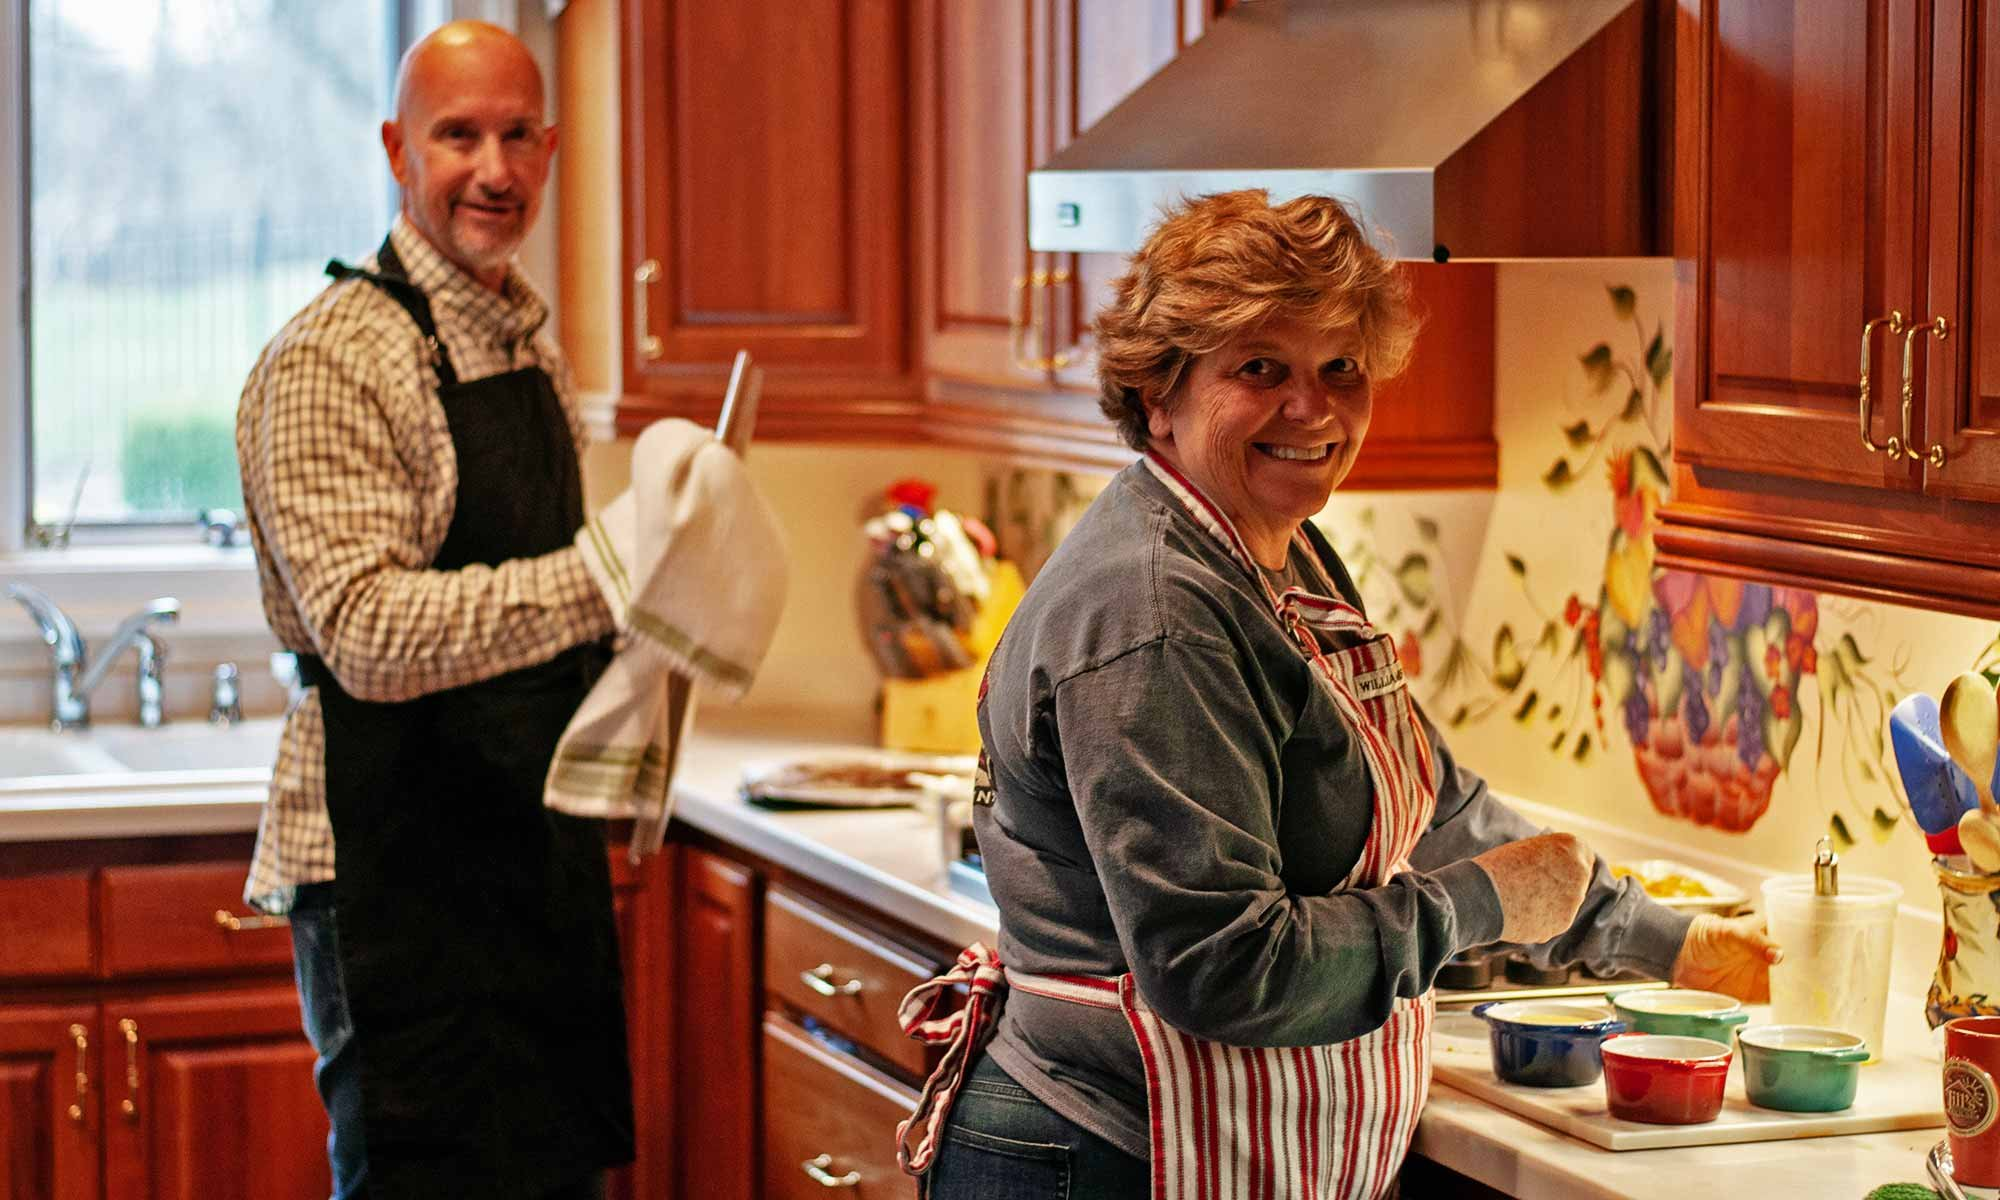 Innkeepers, Vickie and Richard, in The Kitchen